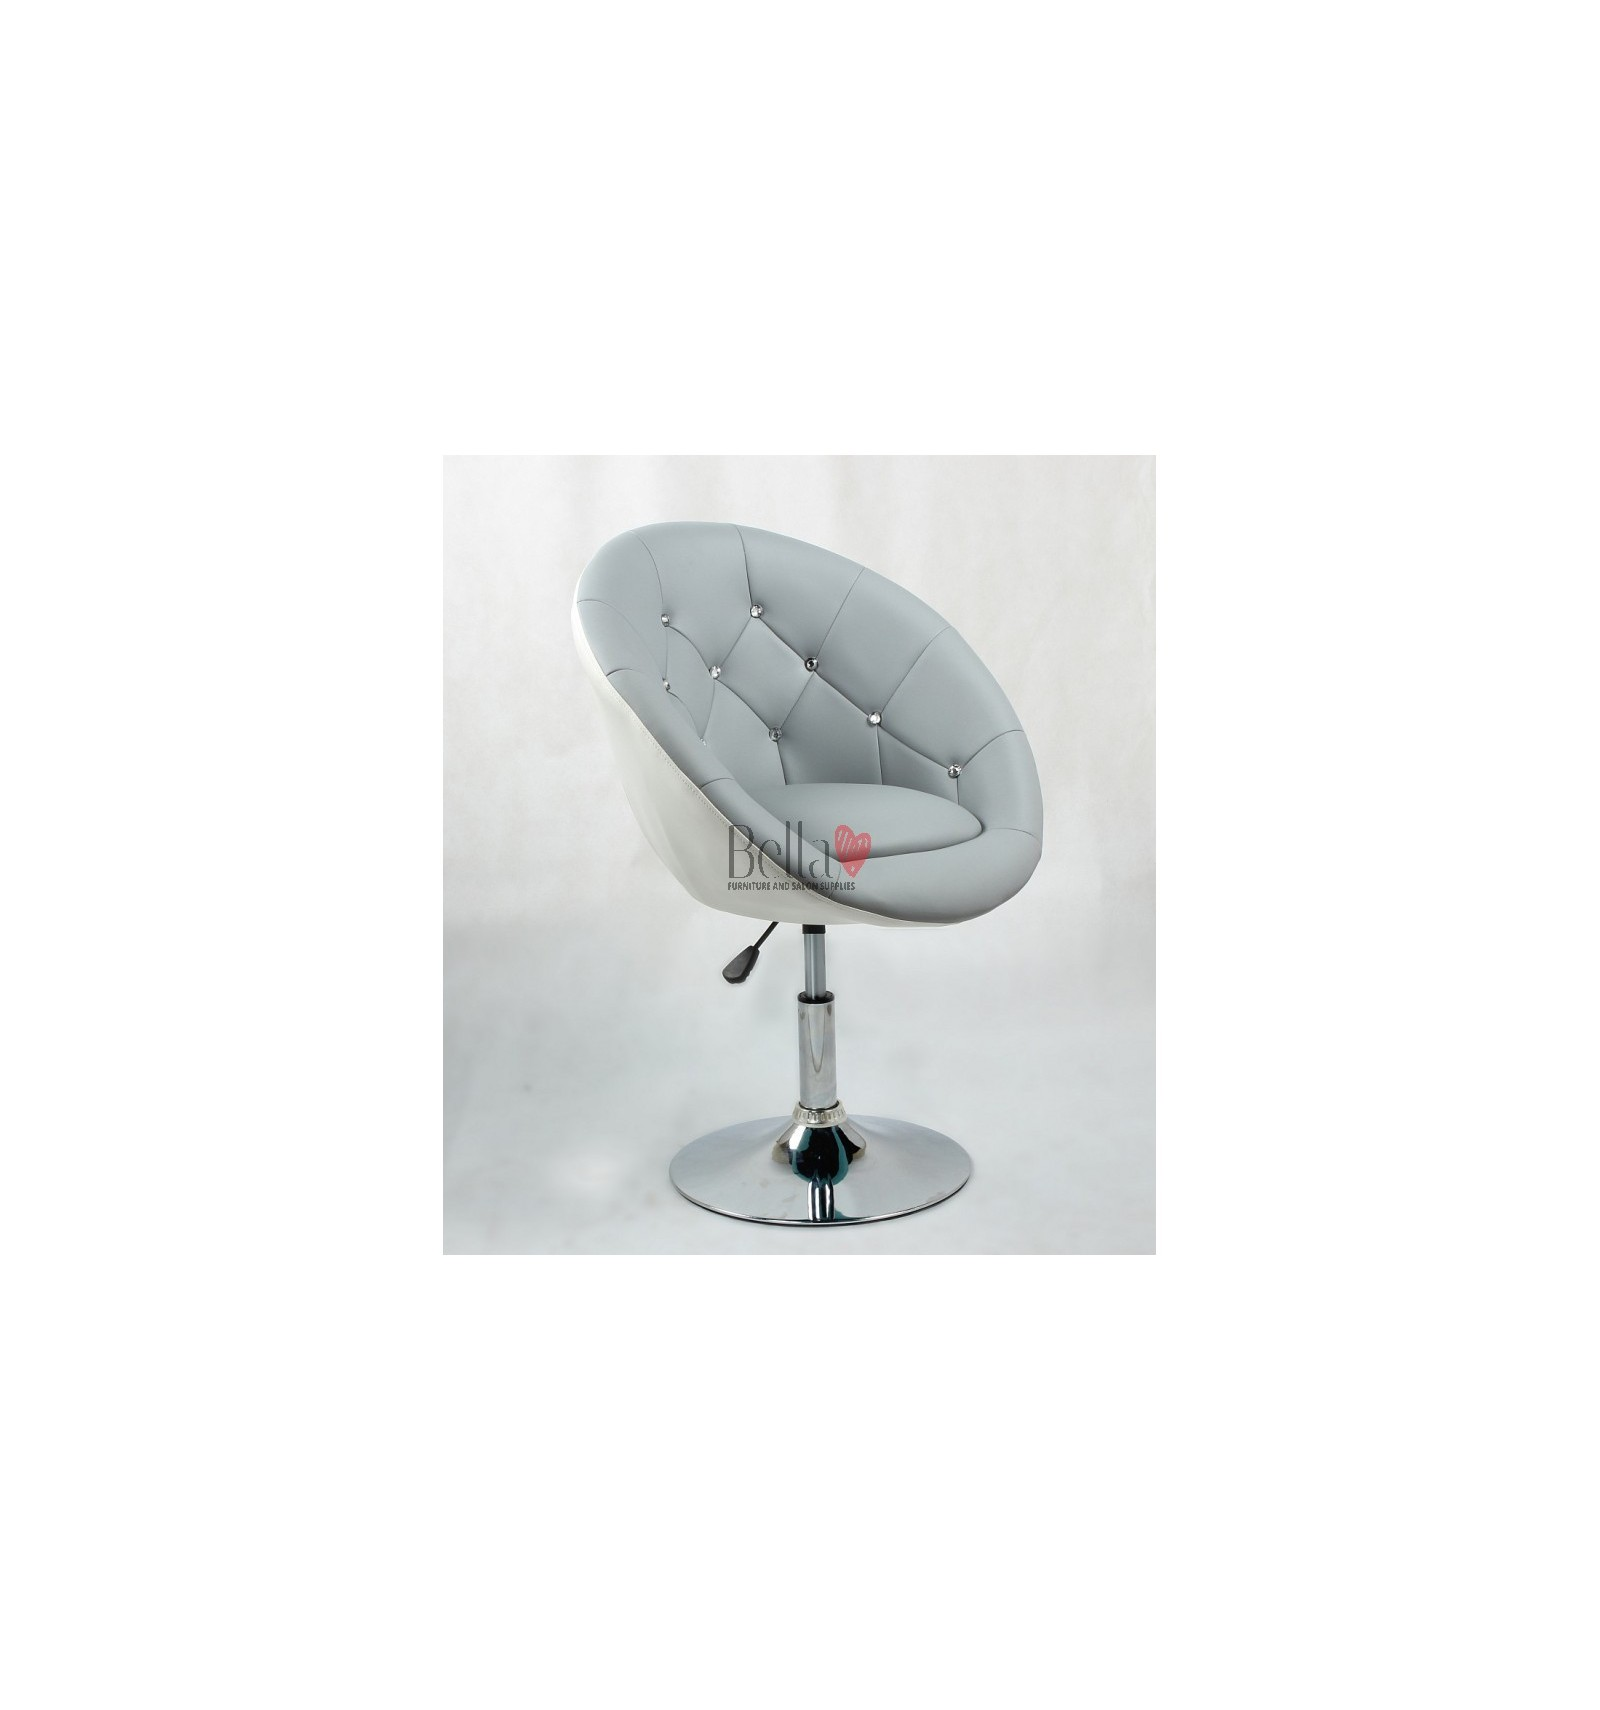 Bellafurniture Grey White Salon Chair Hc8516 For Hairdressers And Beauty